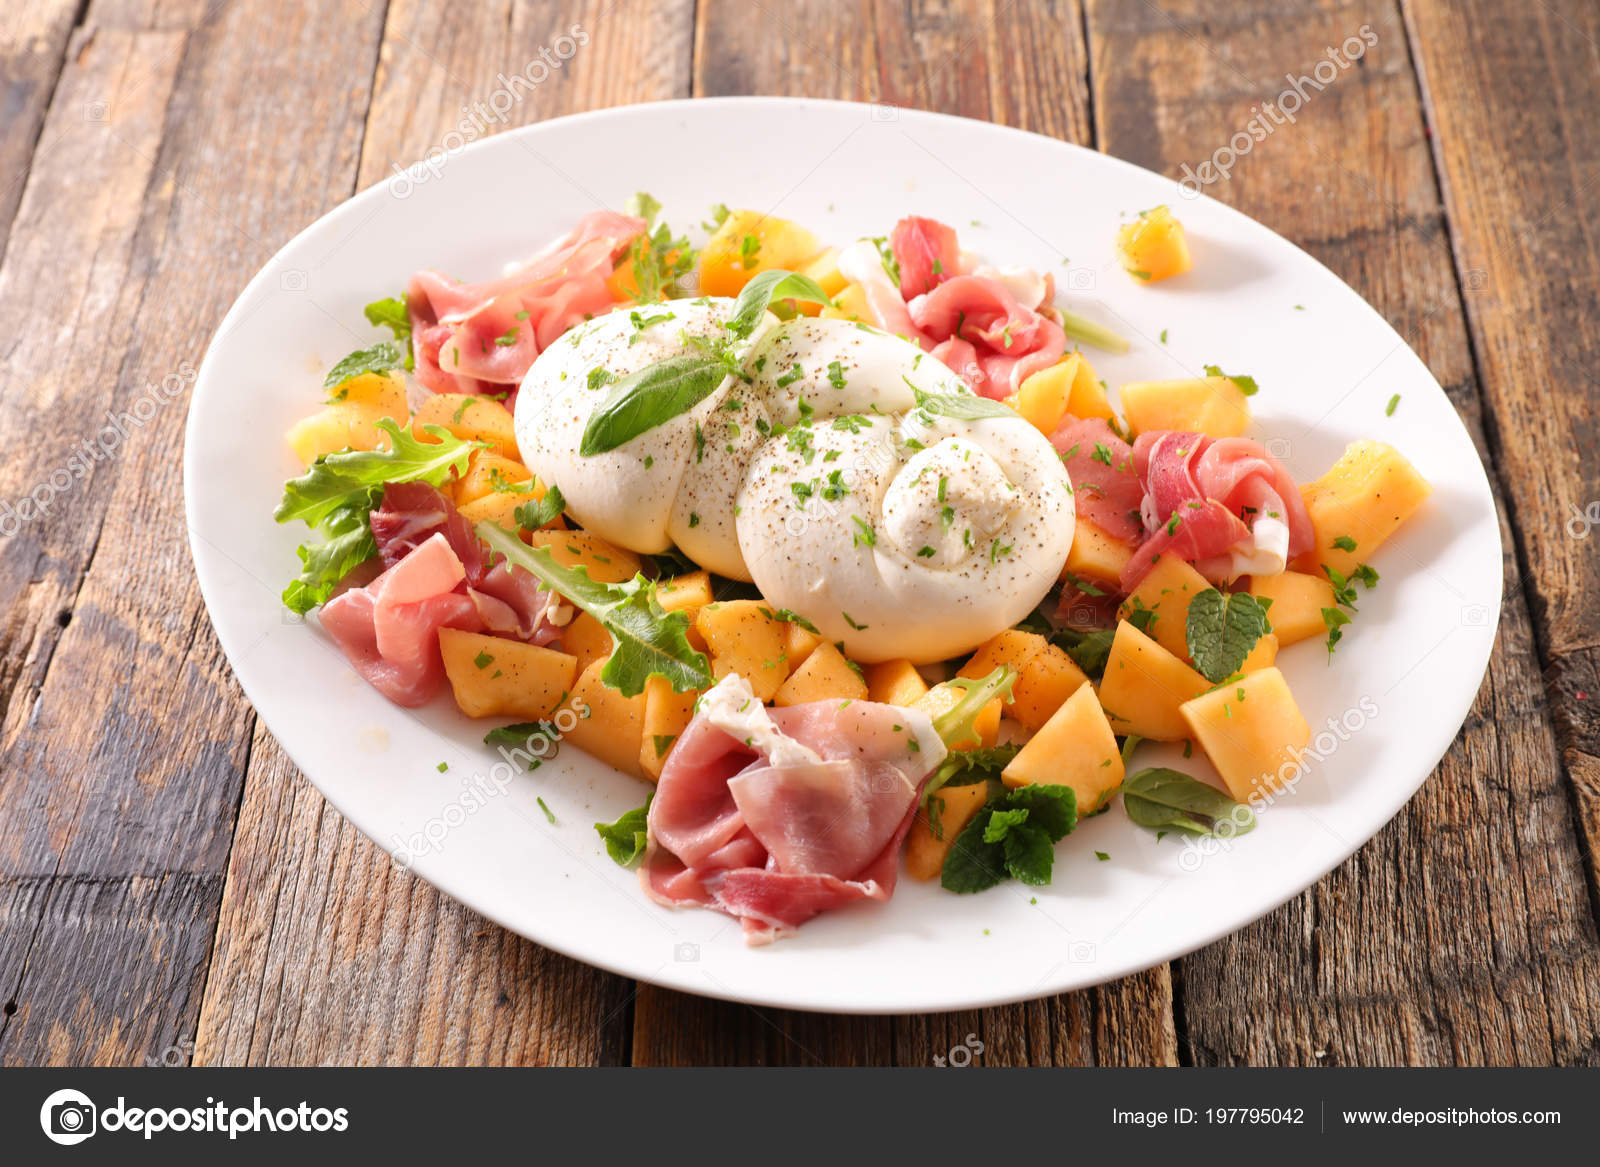 Melonen Mozzarella Salat Melon Salad Prosciutto Ham Mozzarella Stock Photo Studiom